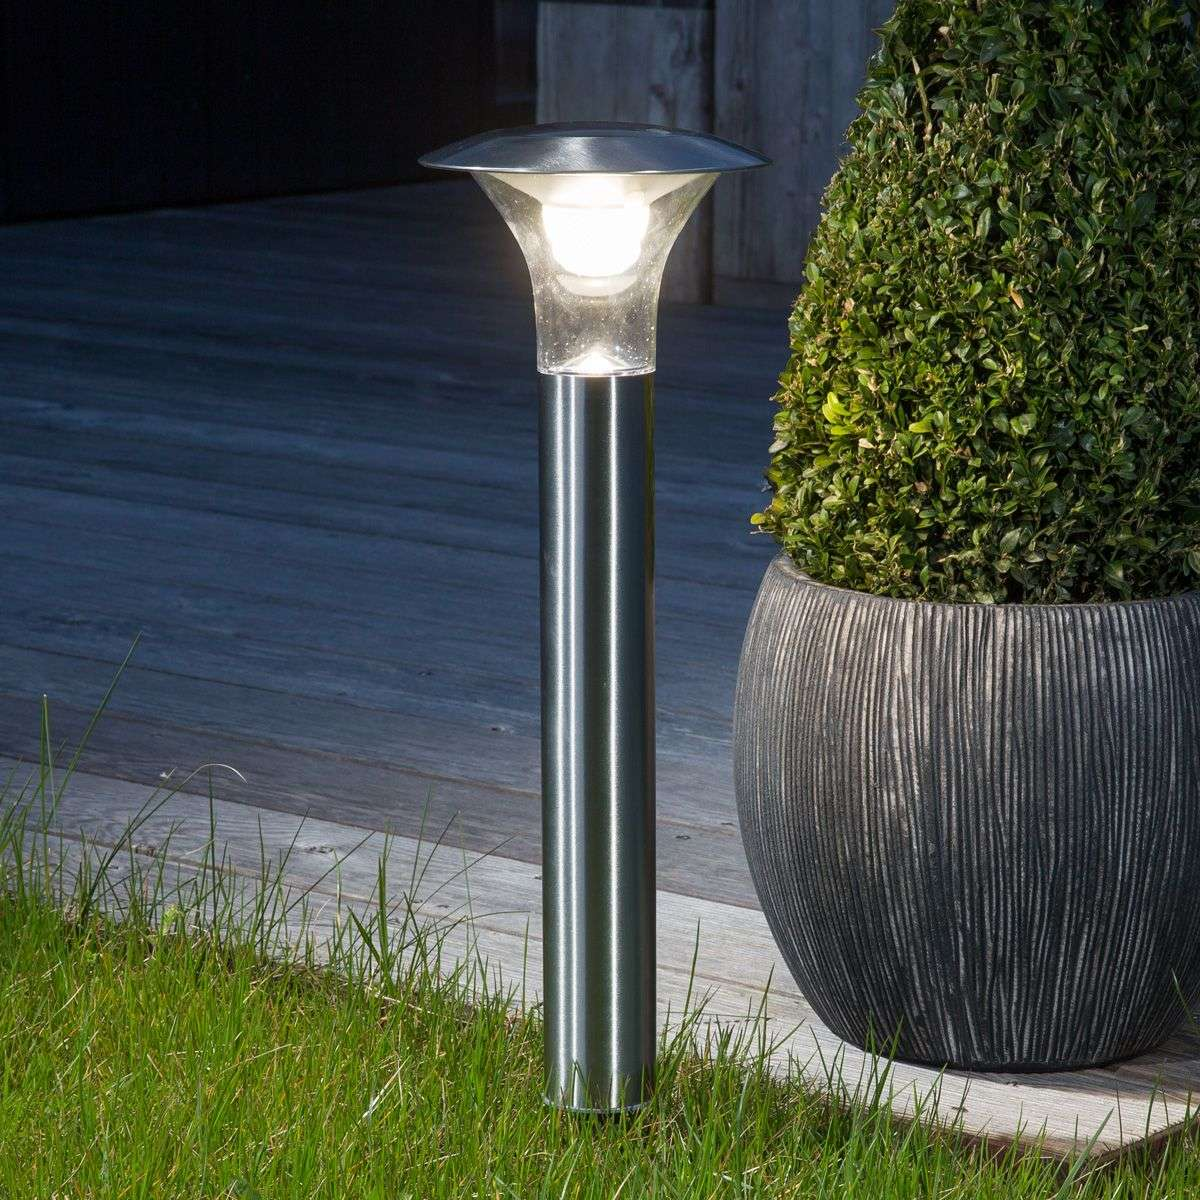 Outdoor Solar Lights In Ground: Jolin Ground Spike Light With LED, Solar-operated